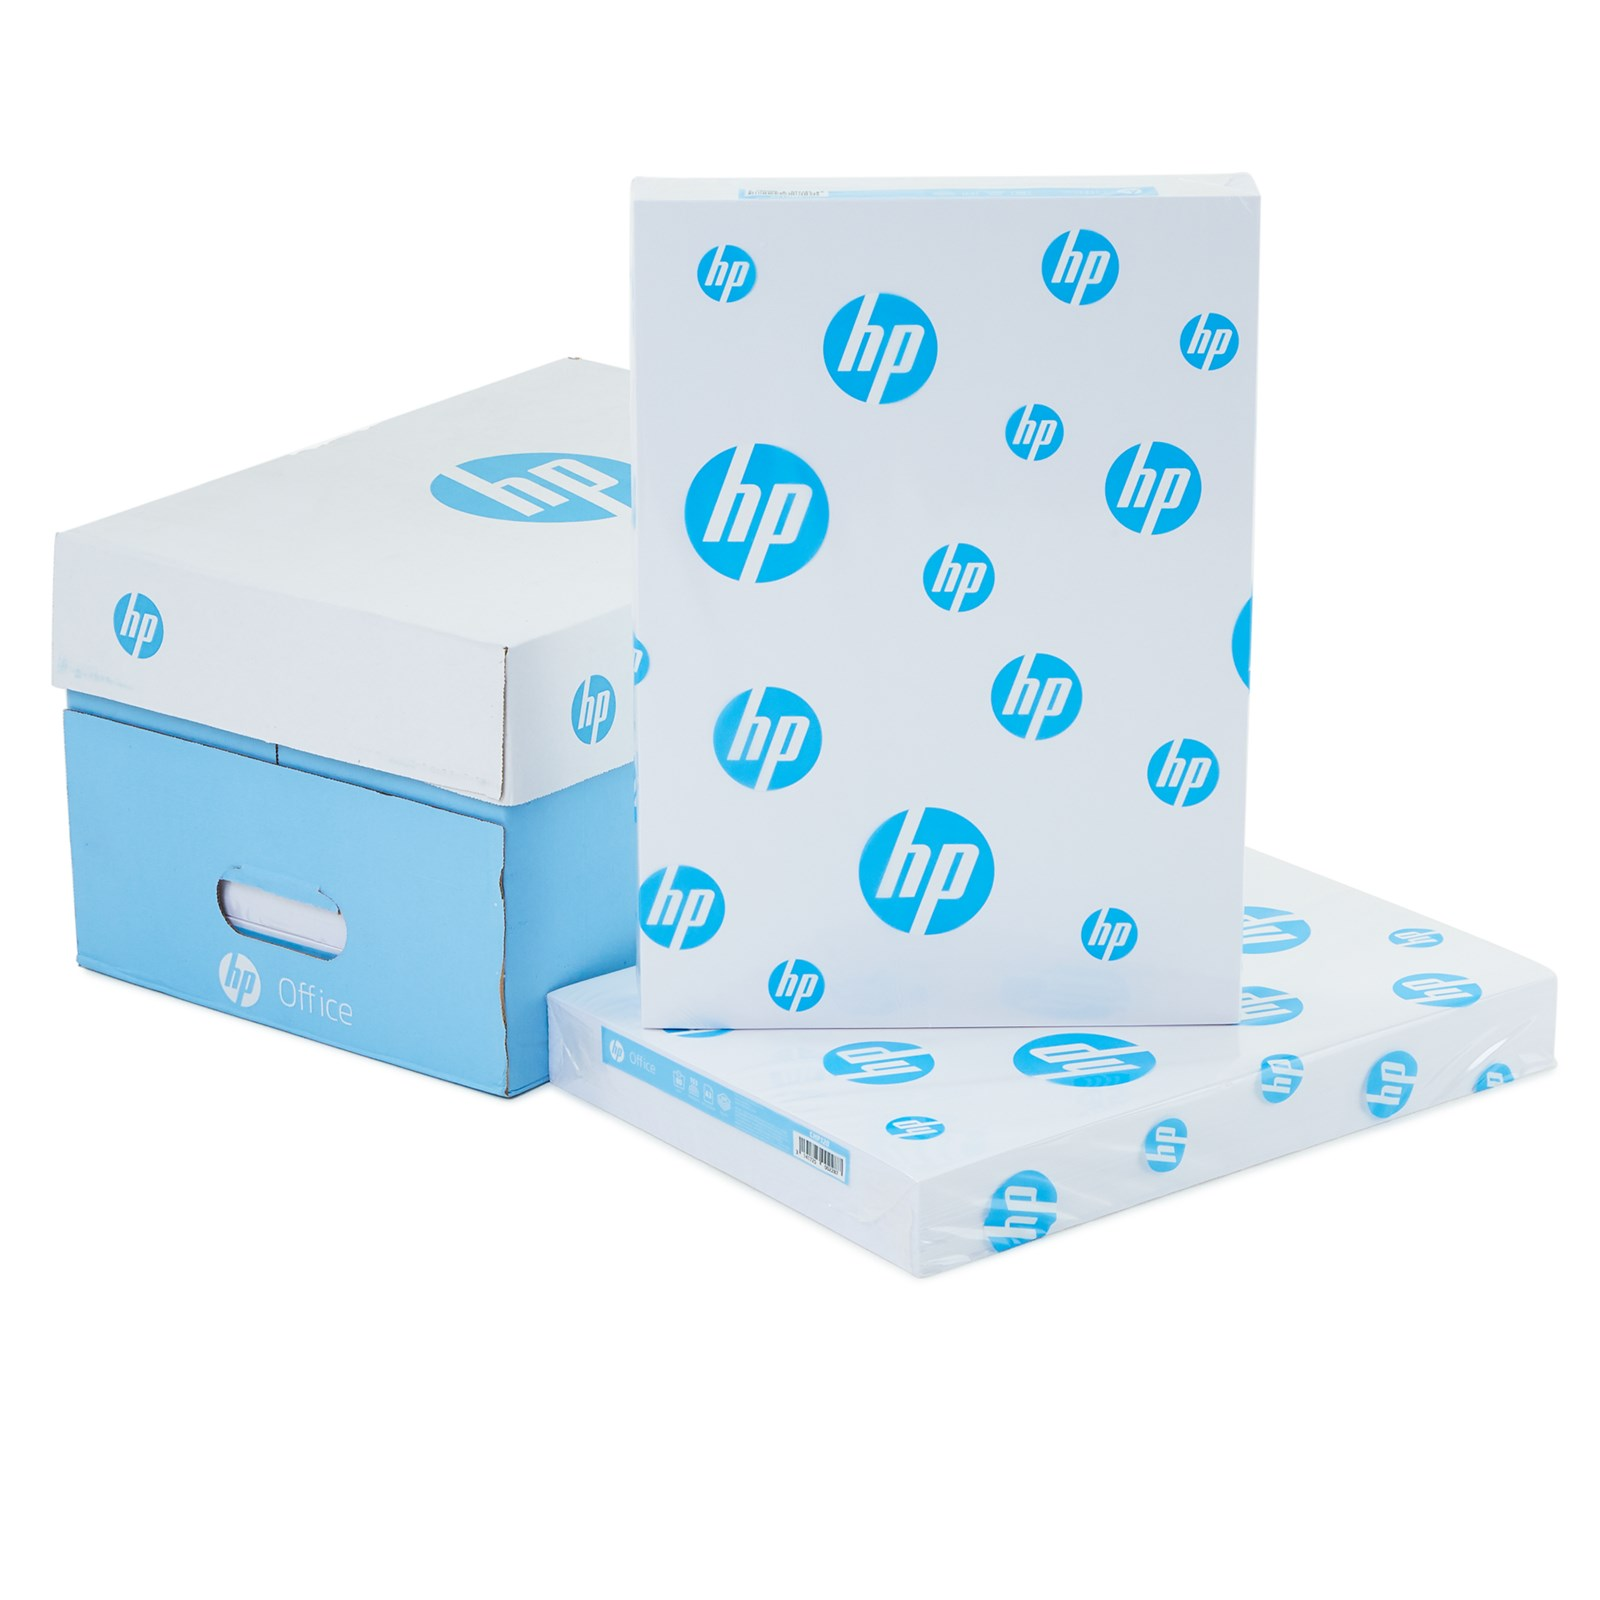 HP Office A3 Paper